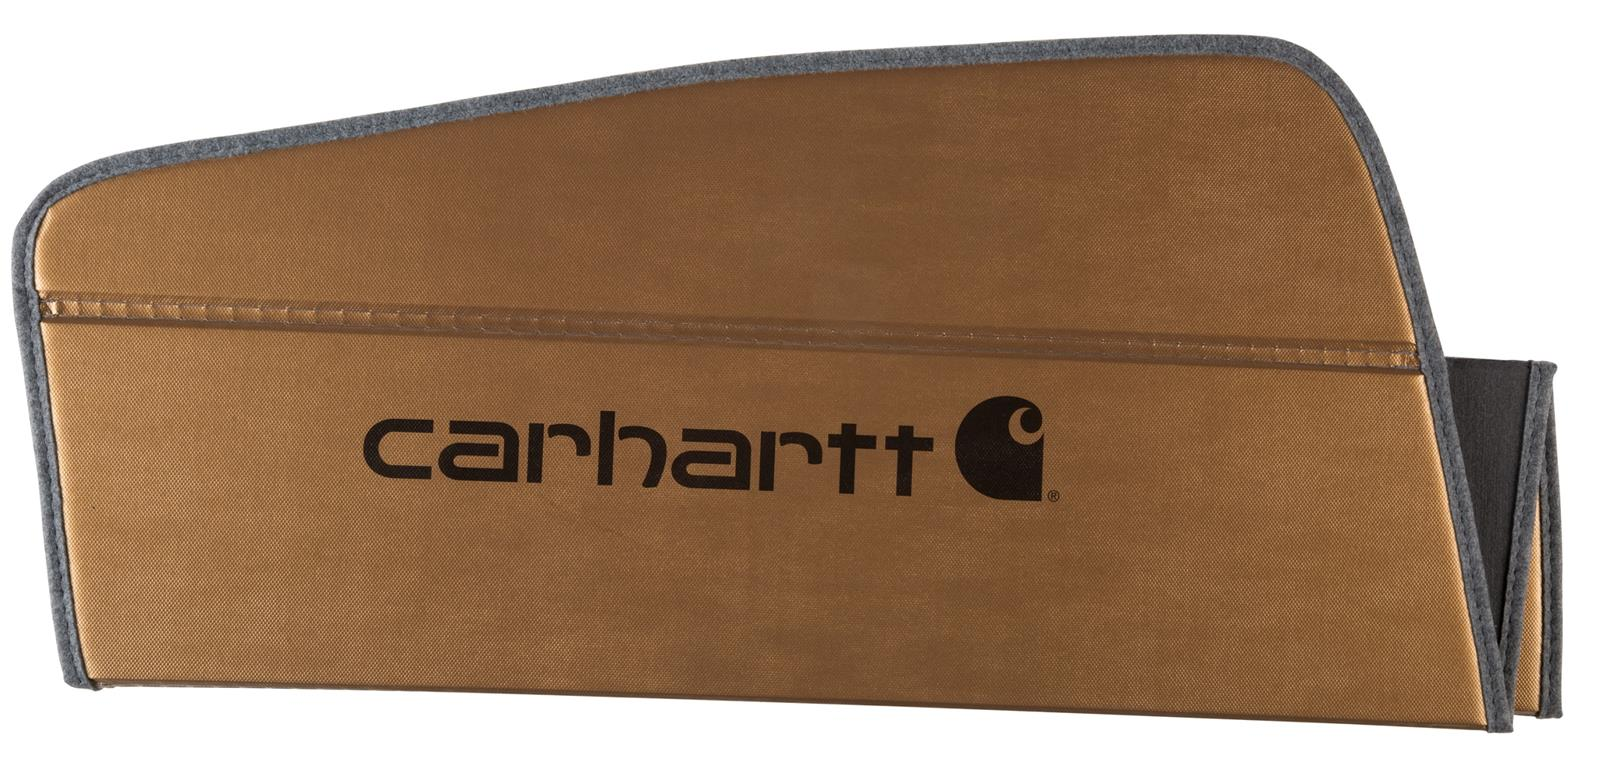 Carhartt by Covercraft Windshield Sun Visor -2015+ Models - Ships Free